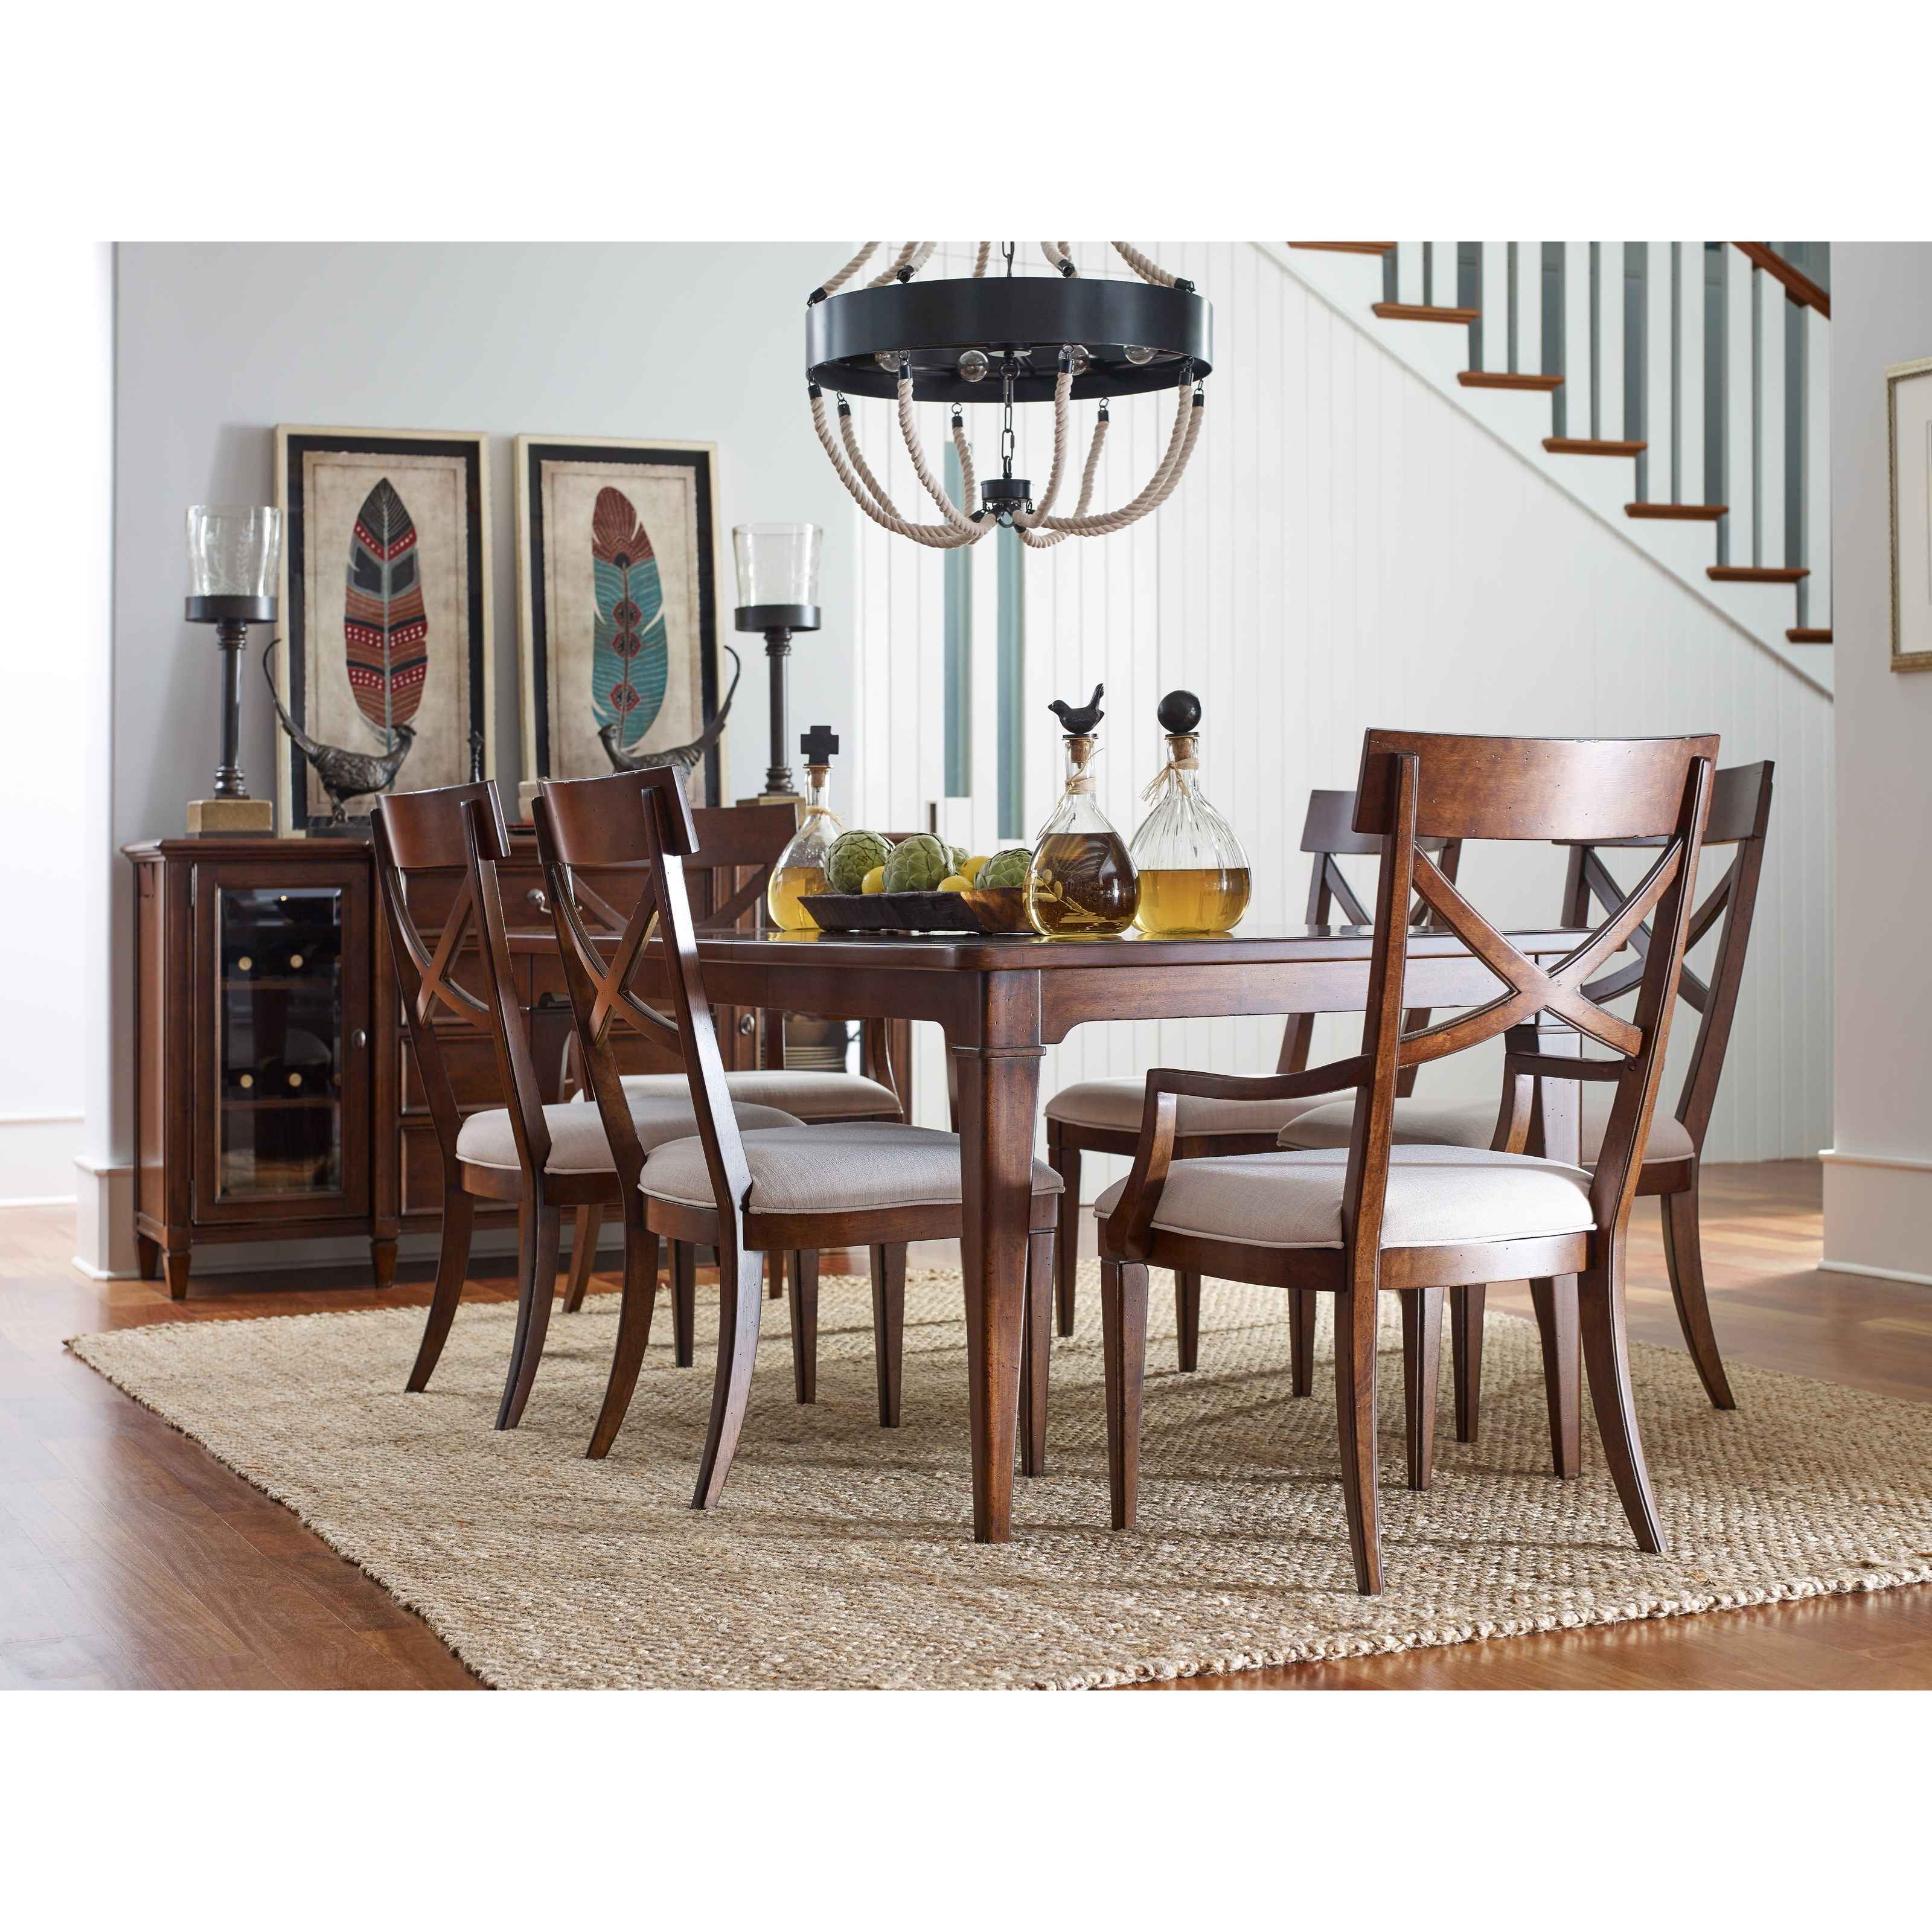 Rachael ray home by legacy classic upstate formal dining for Legacy classic dining room furniture